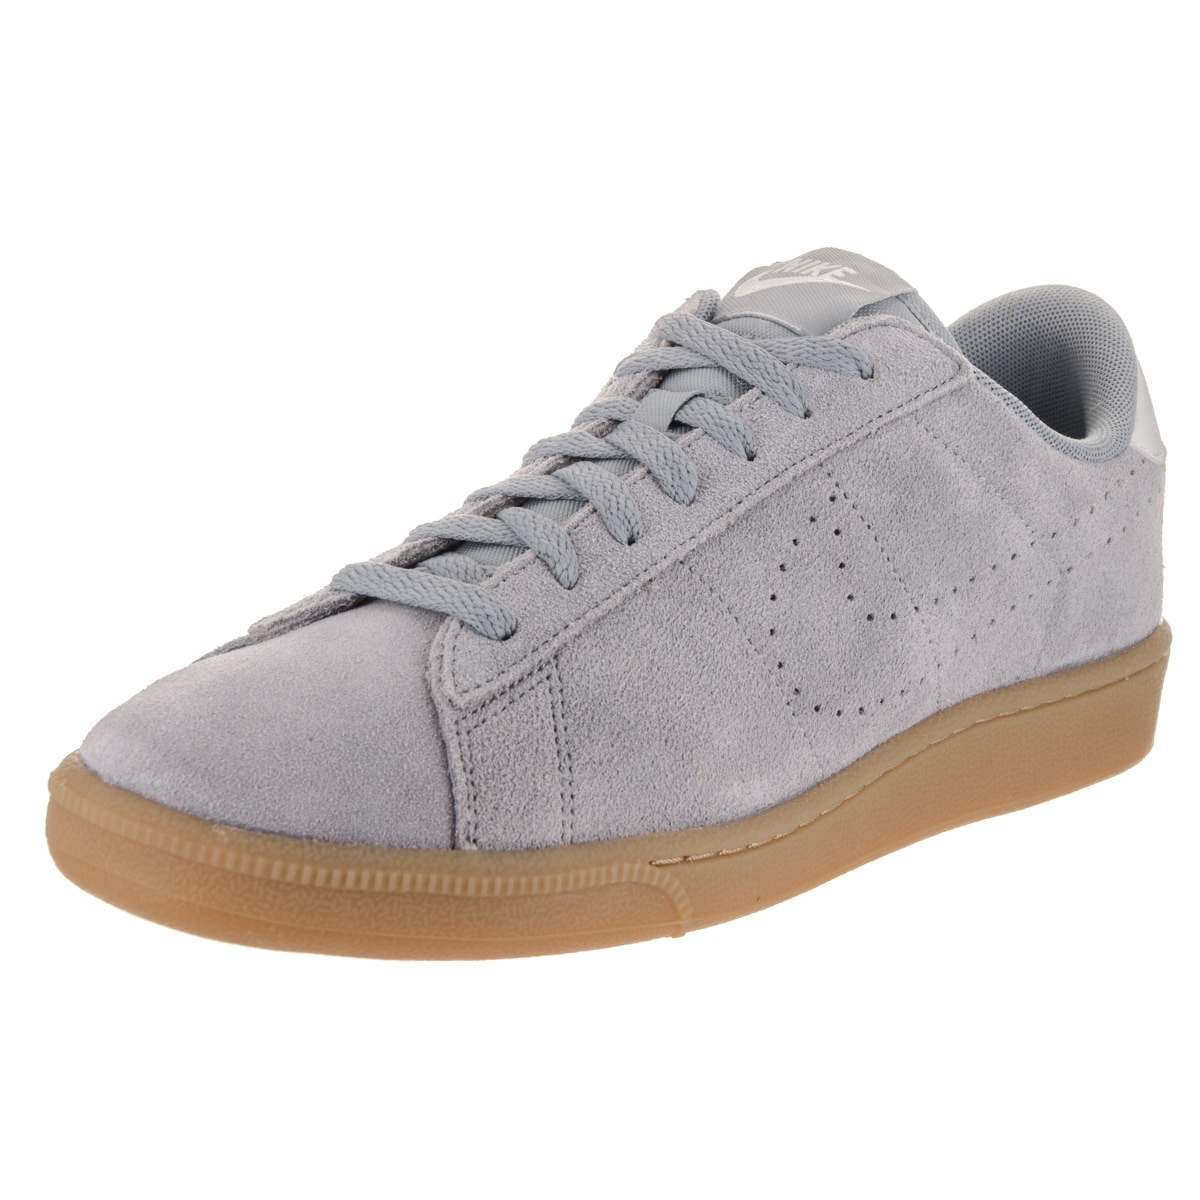 Nike Men's Tennis Classic CS Suede Tennis Shoes (9), Grey